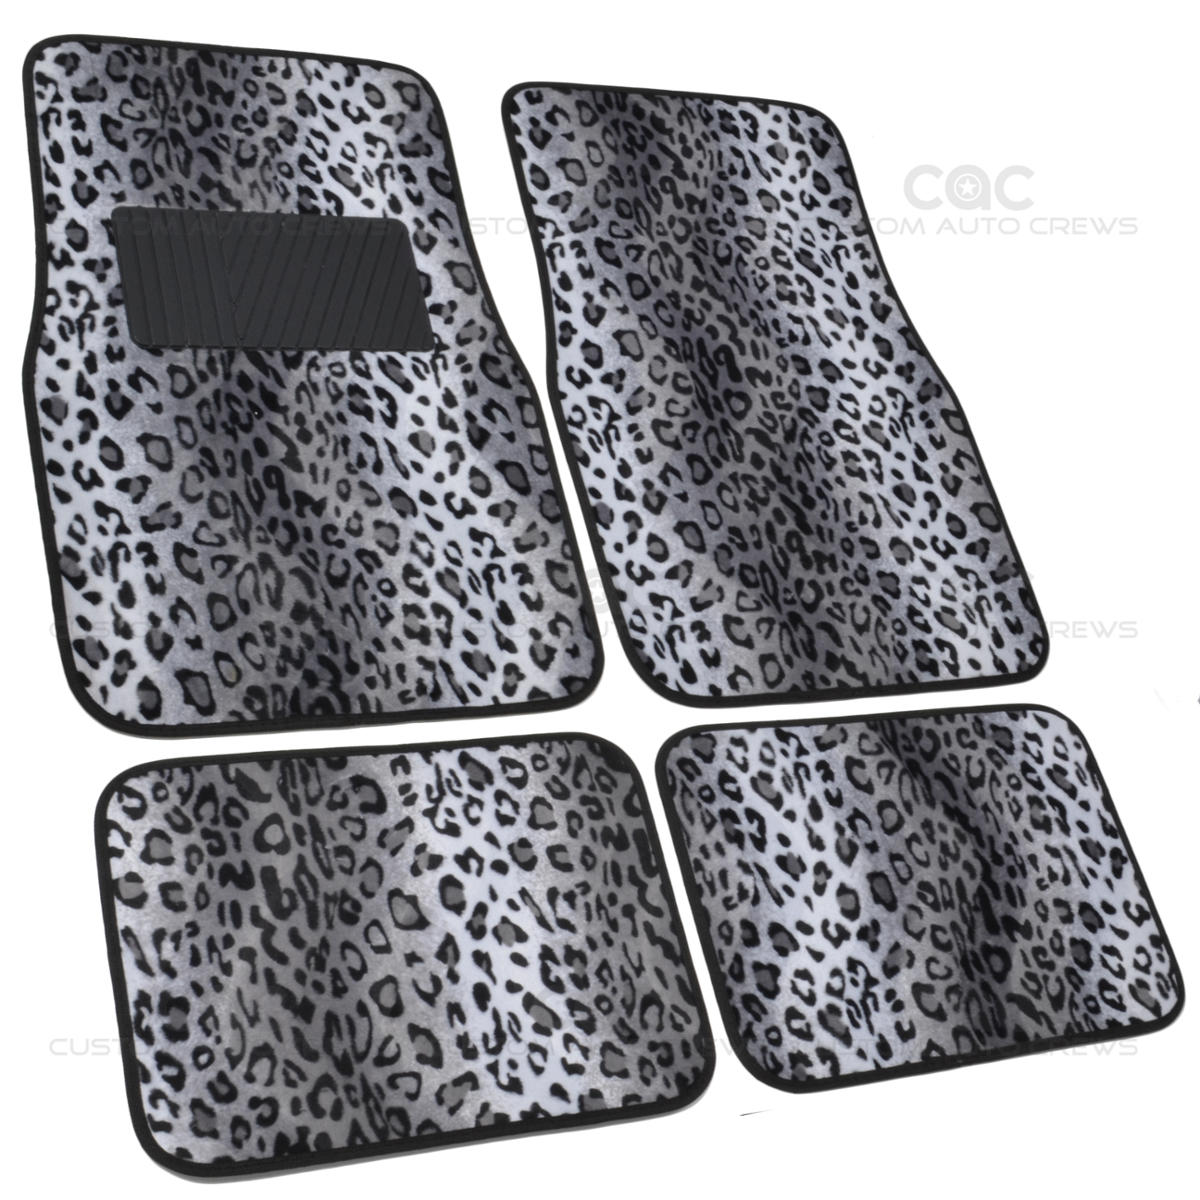 Bdk 4pc Full Set Gray Animal Print Safari Leopard Floor